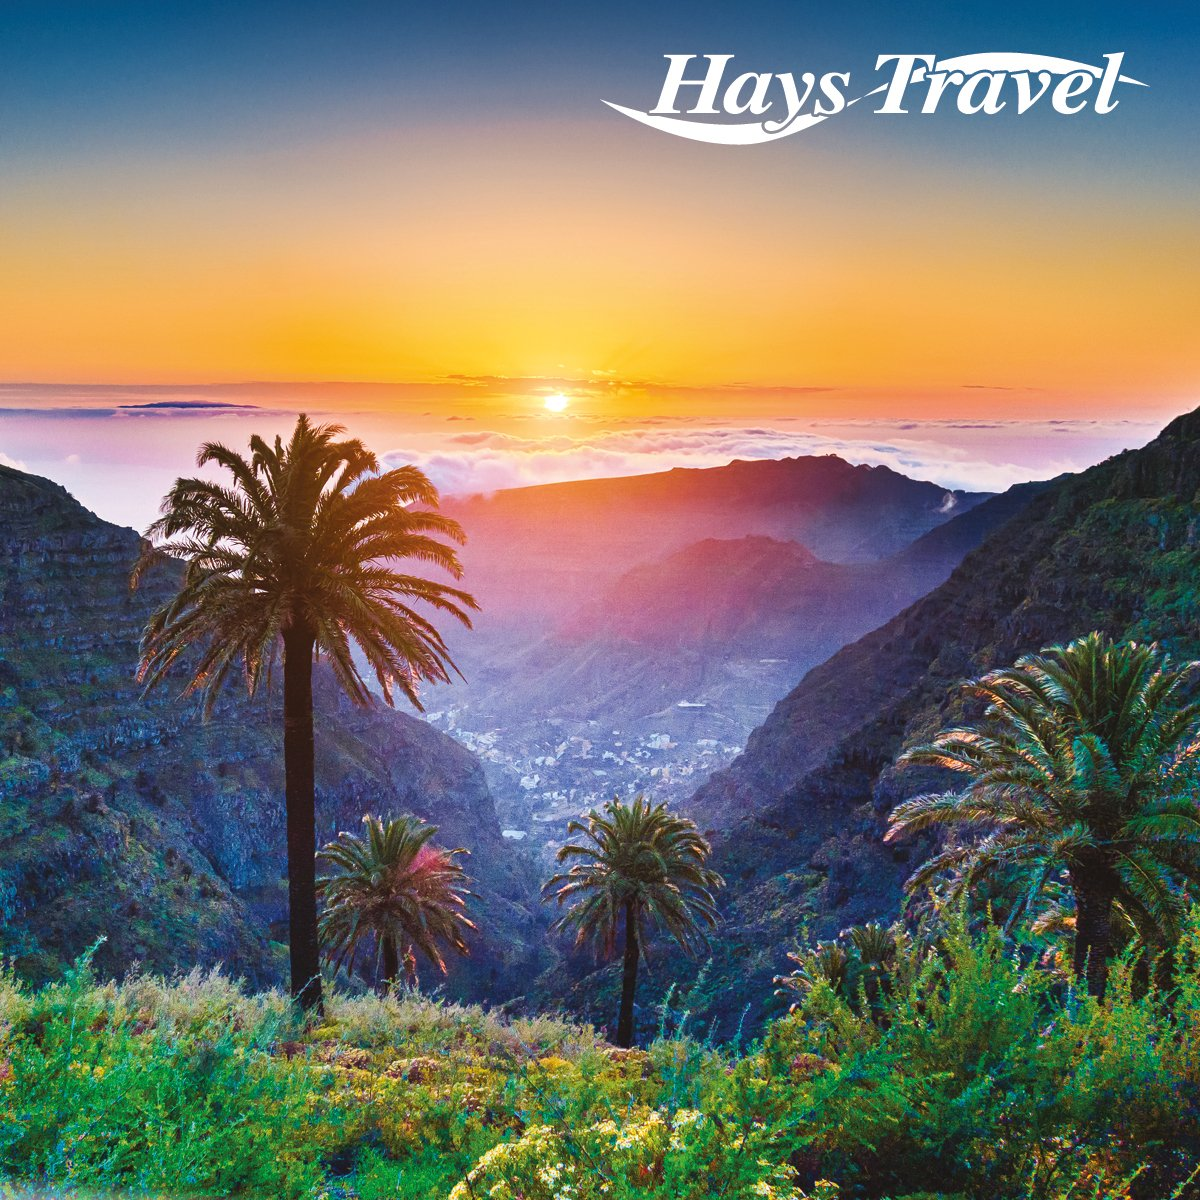 hays travel - photo #20